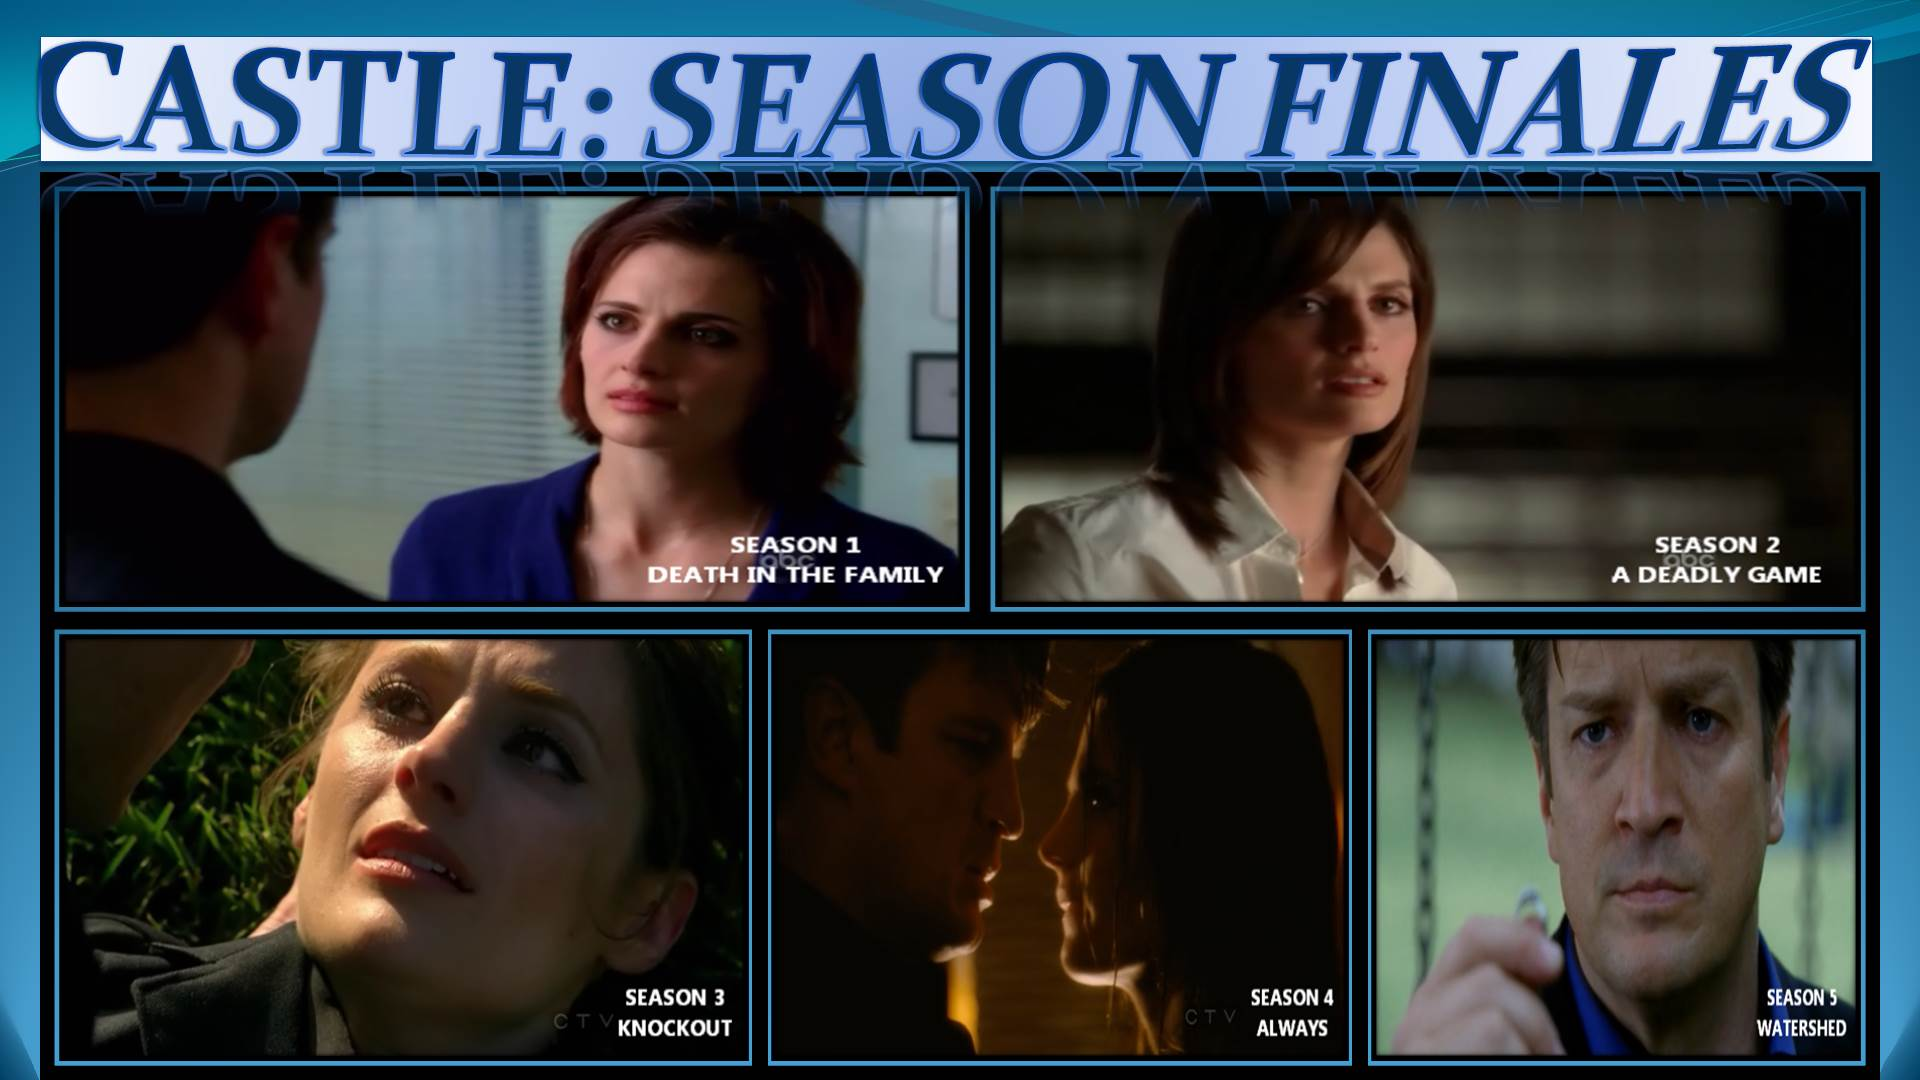 CASTLE: SEASON FINALES